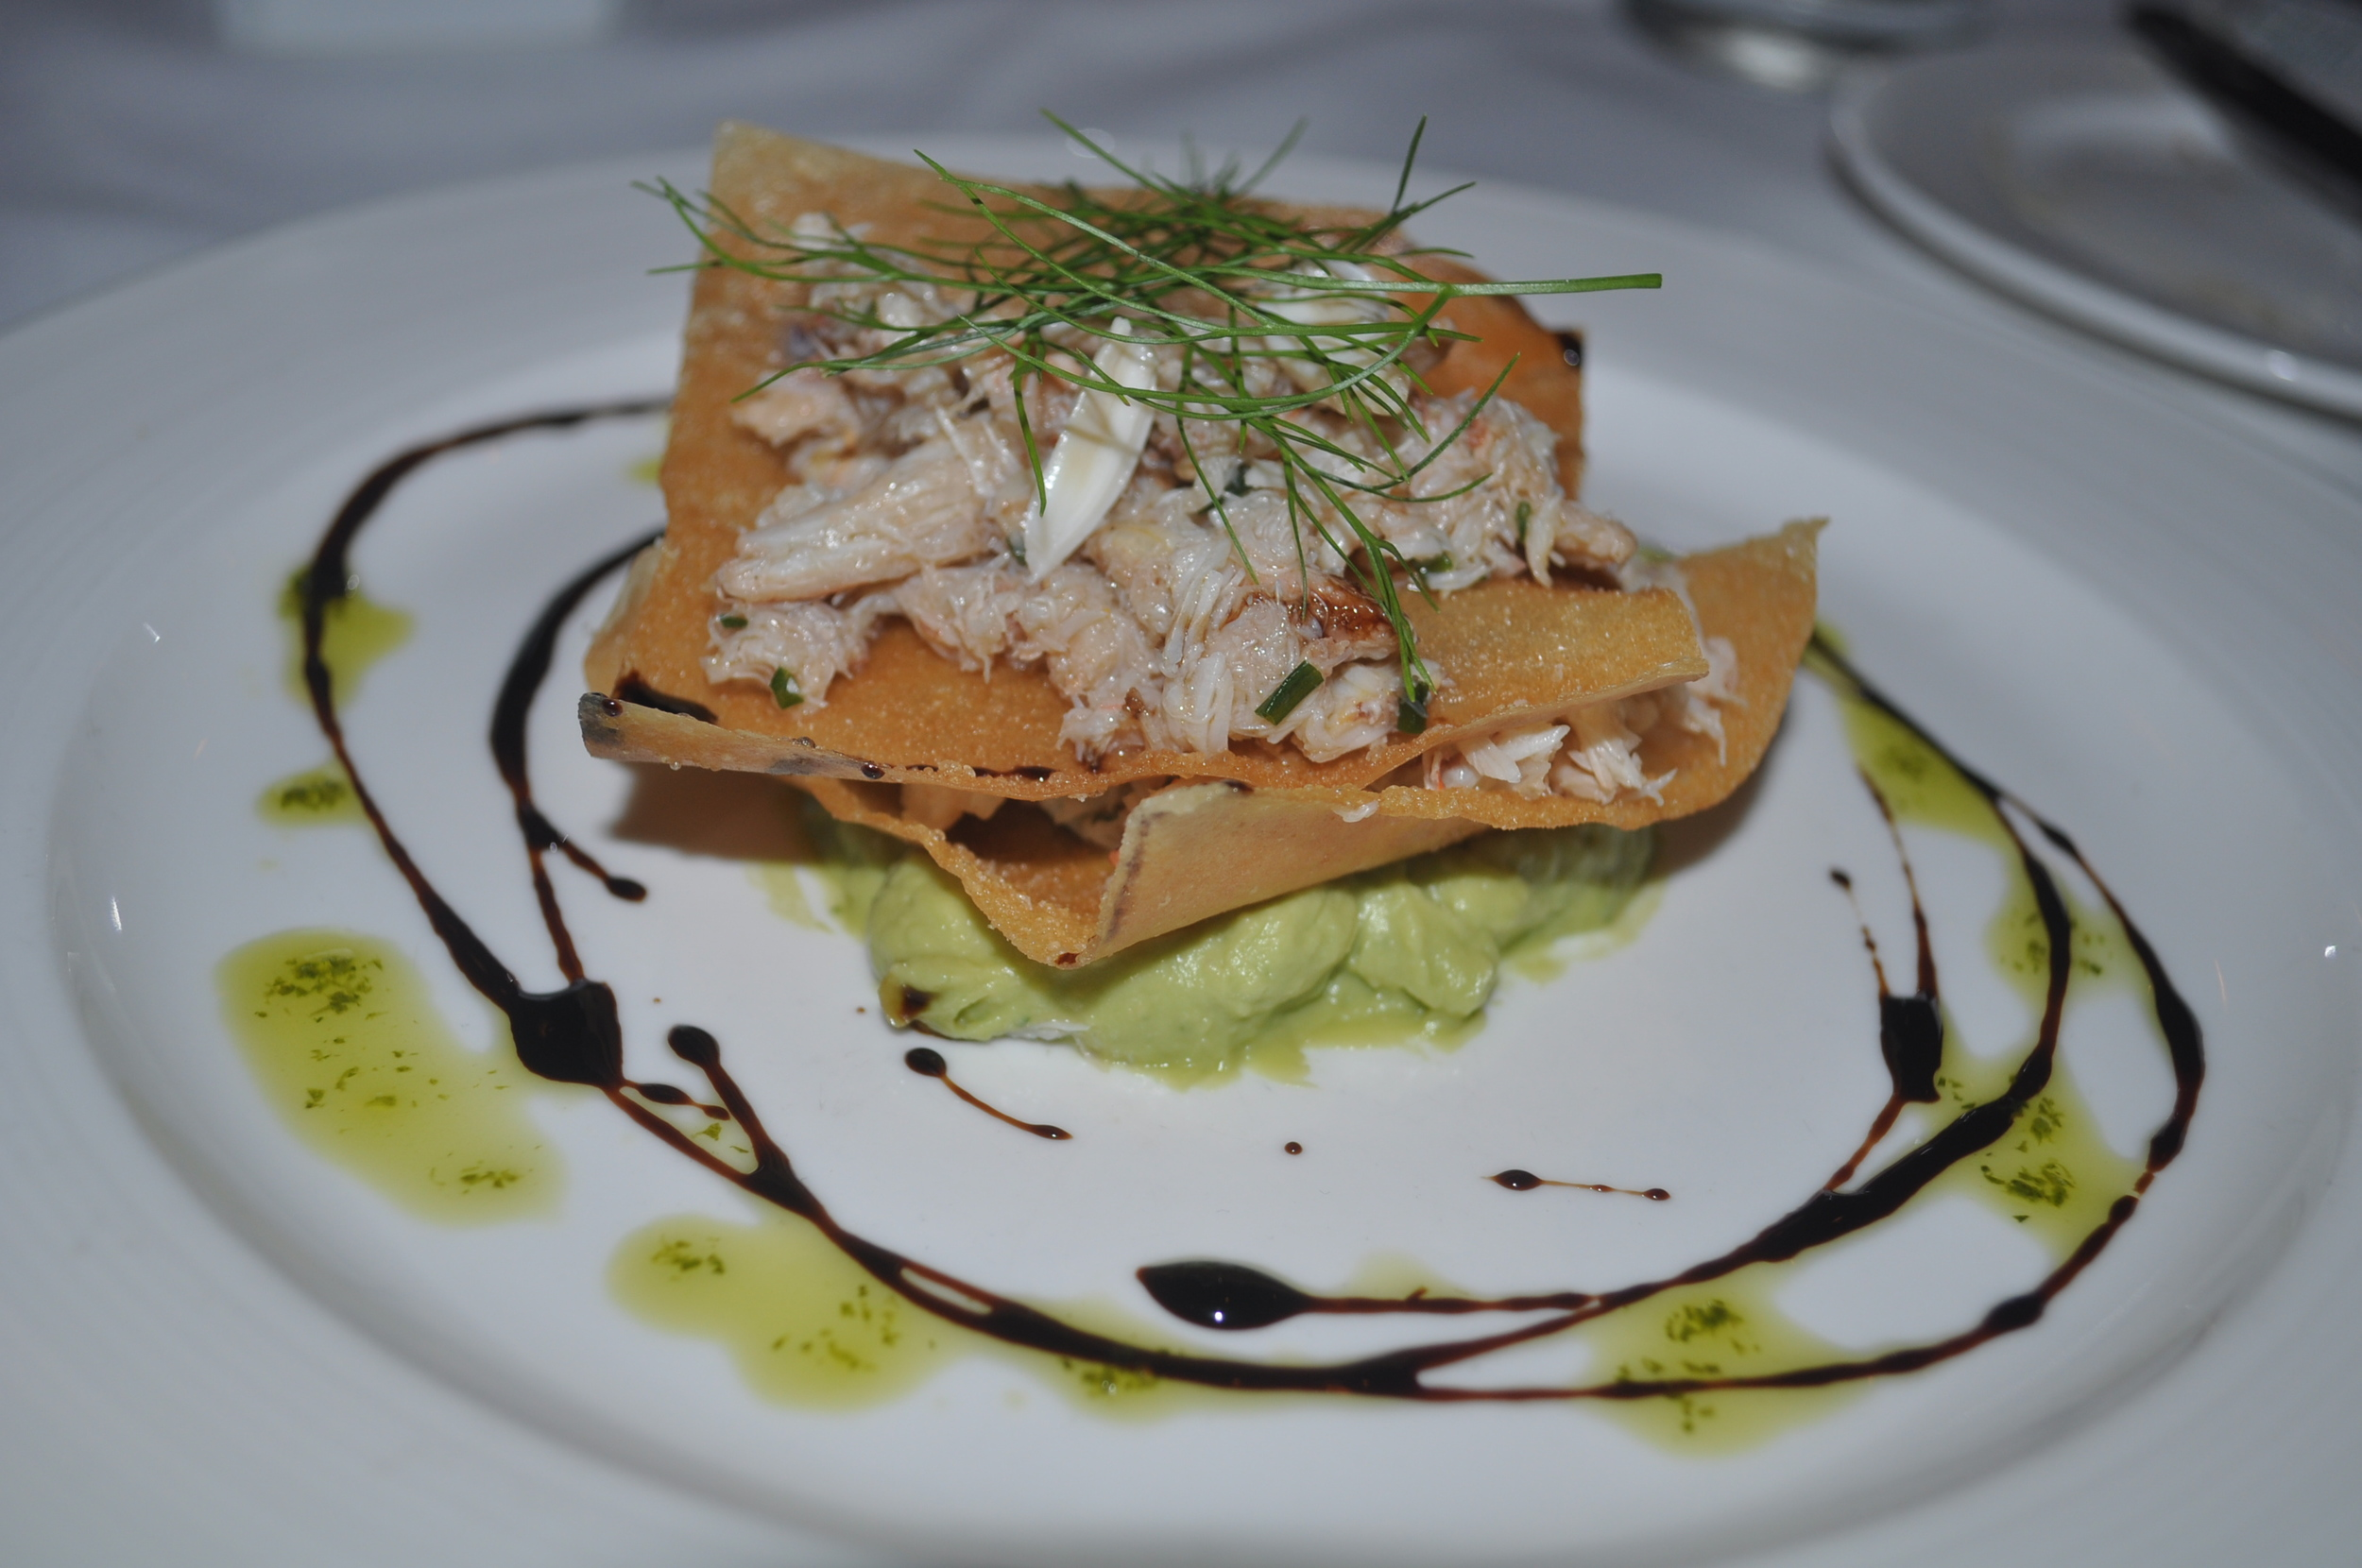 You've probably never had a Napoleon like this one, filled with crabmeat and avocado puree.